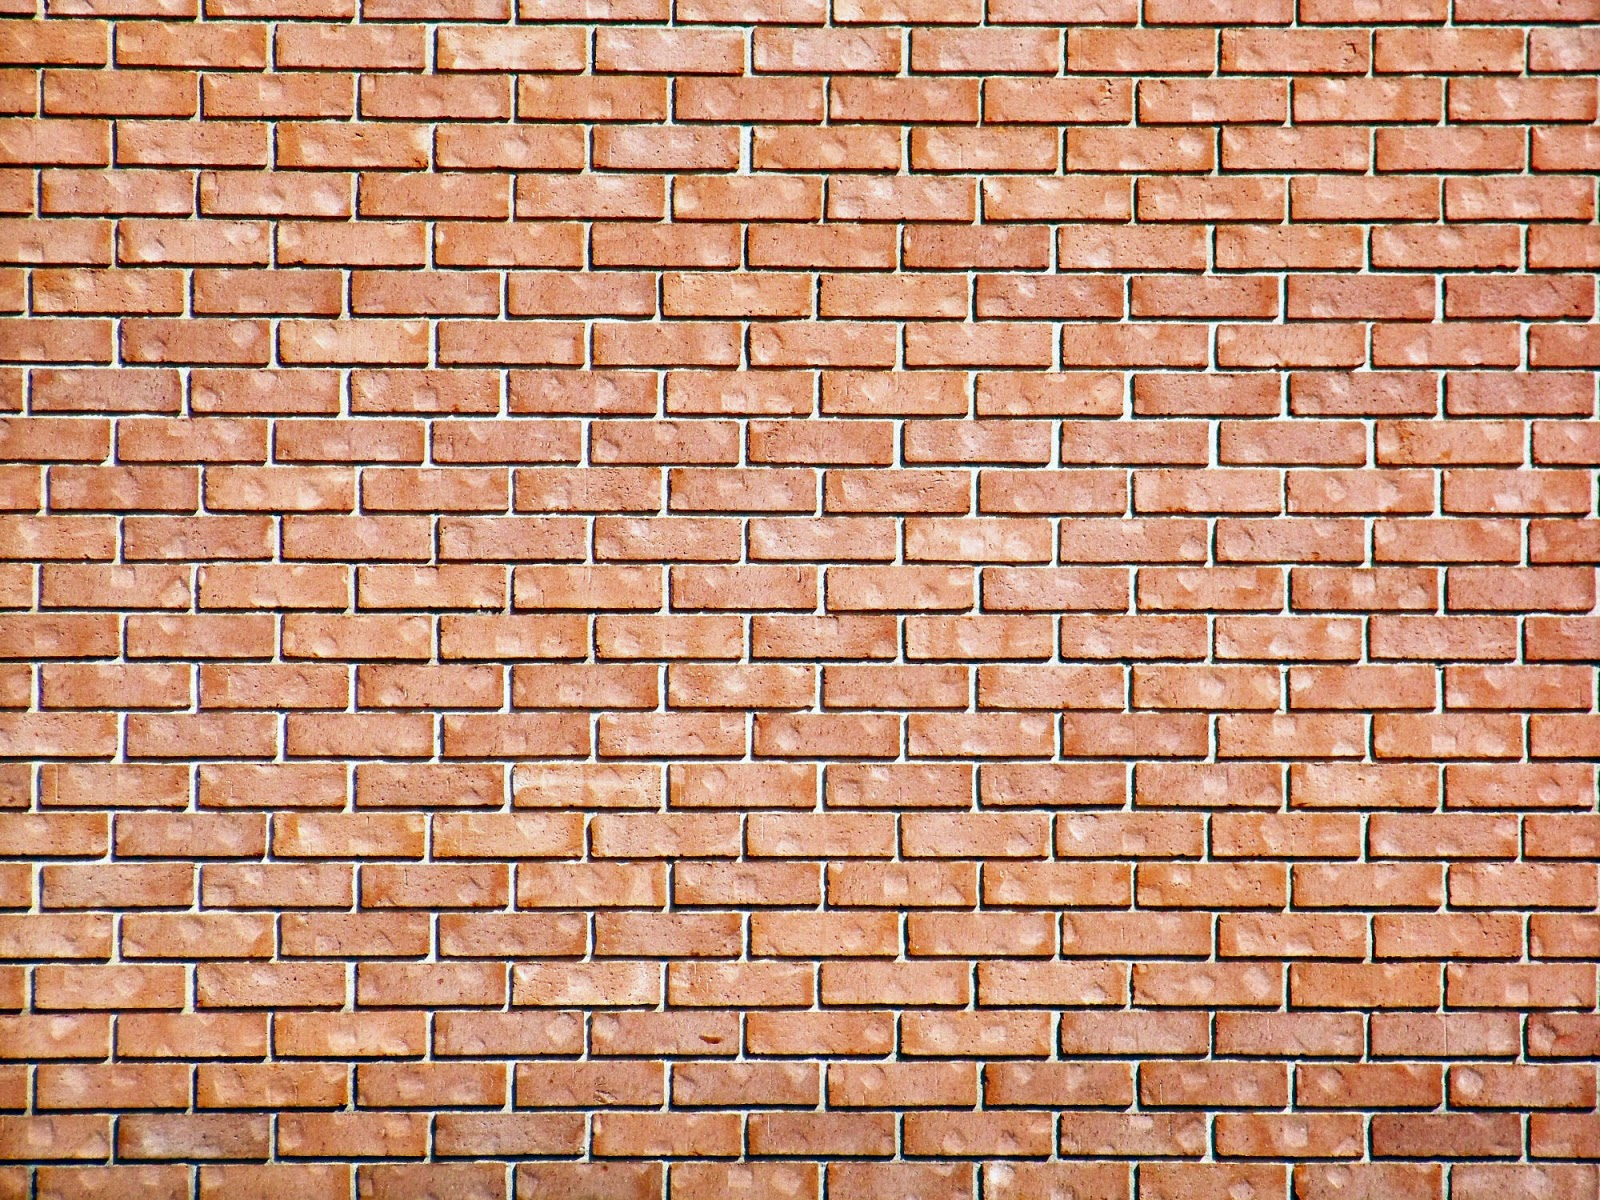 Brick Wall Wallpaper5 1600x1200